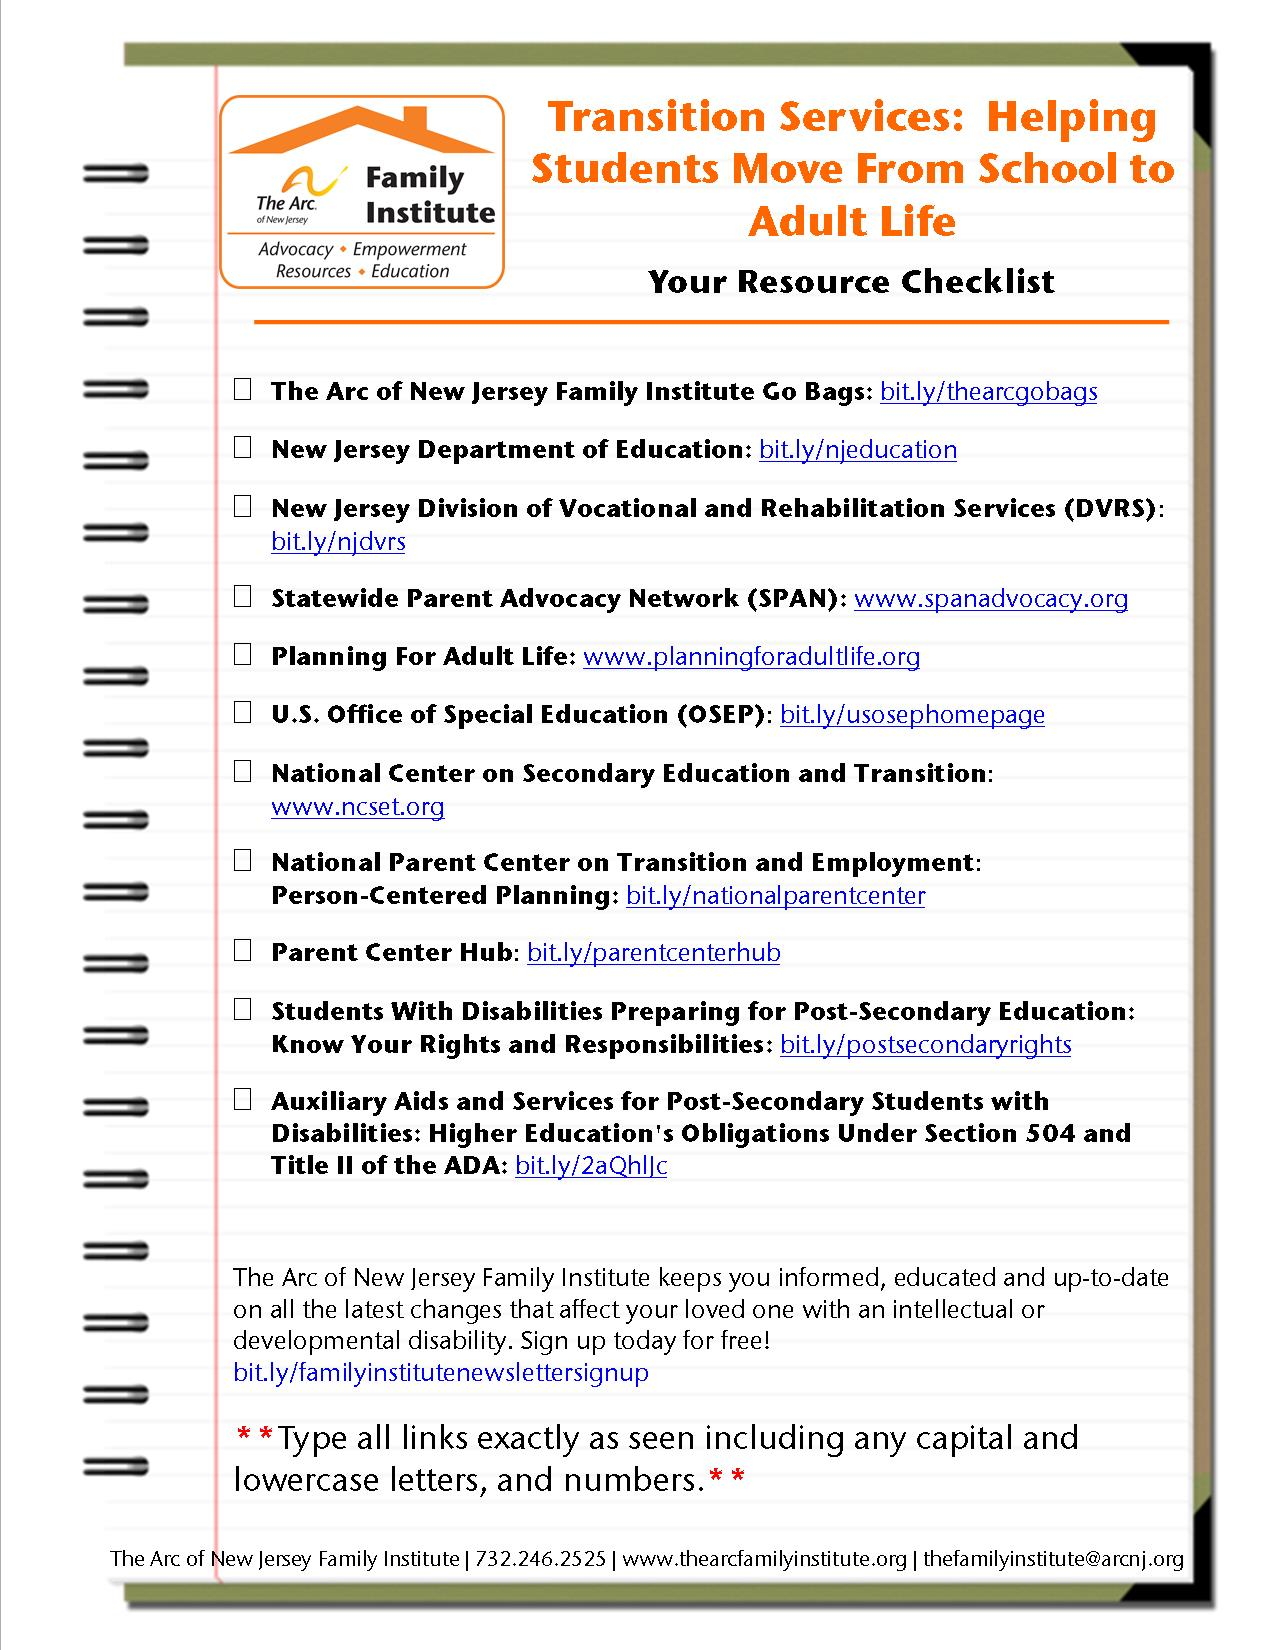 Transition Services:  Helping  Students Move From School to Adult Life - Your Resource Checklist